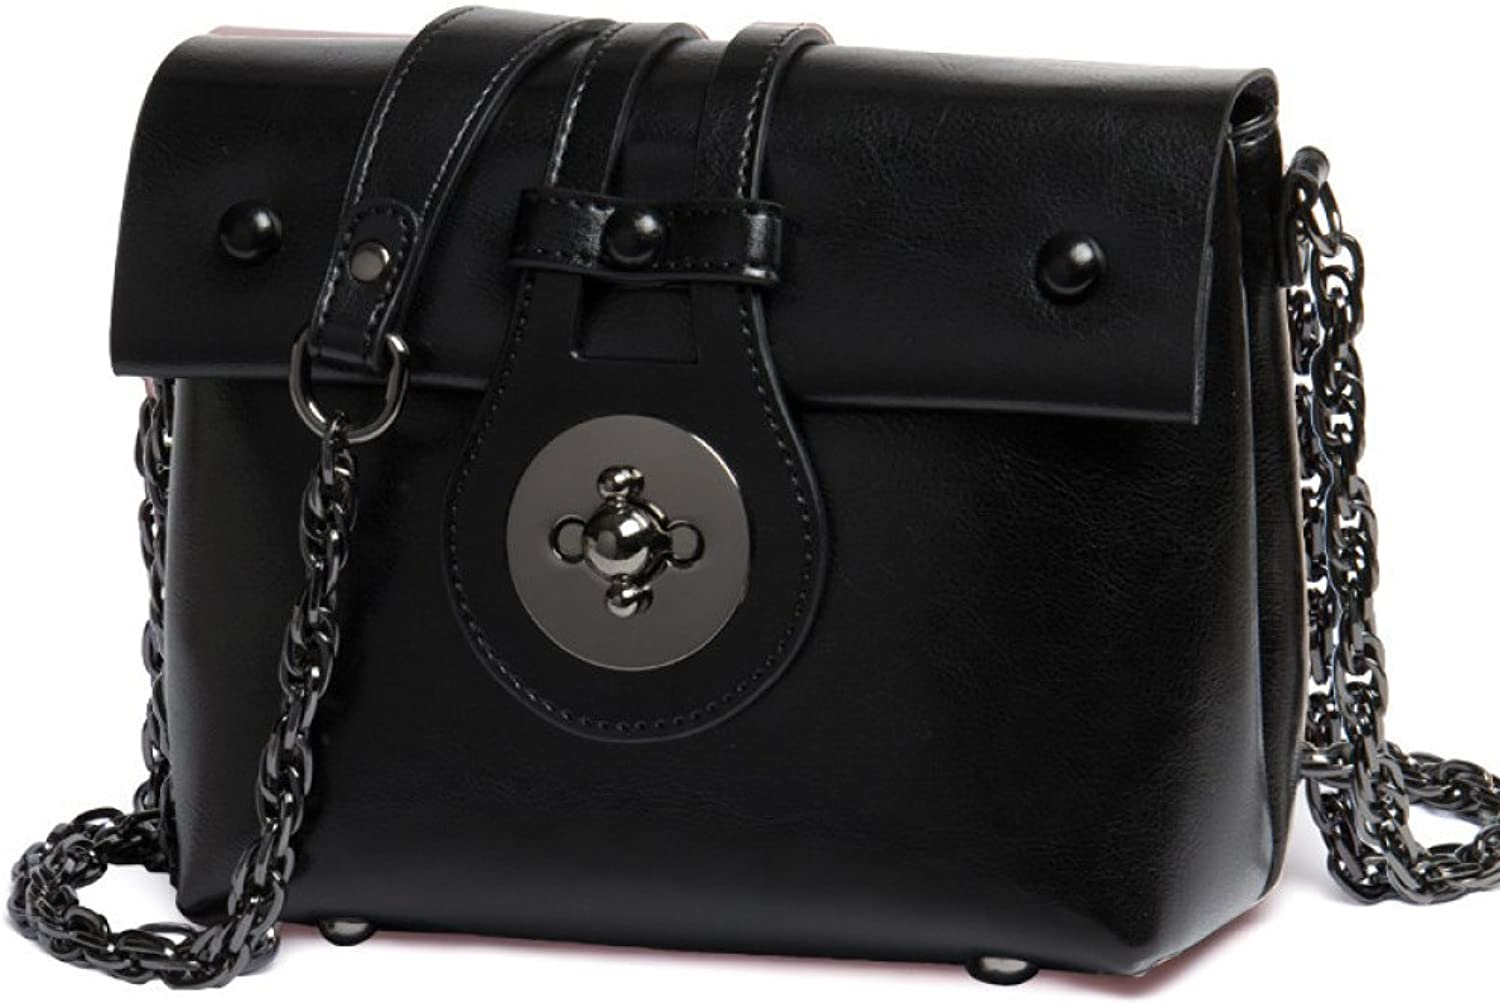 AI BAO Women's Leather Chain Shoulder Bag Wild Messenger Bag Dating Office Small Party Bag